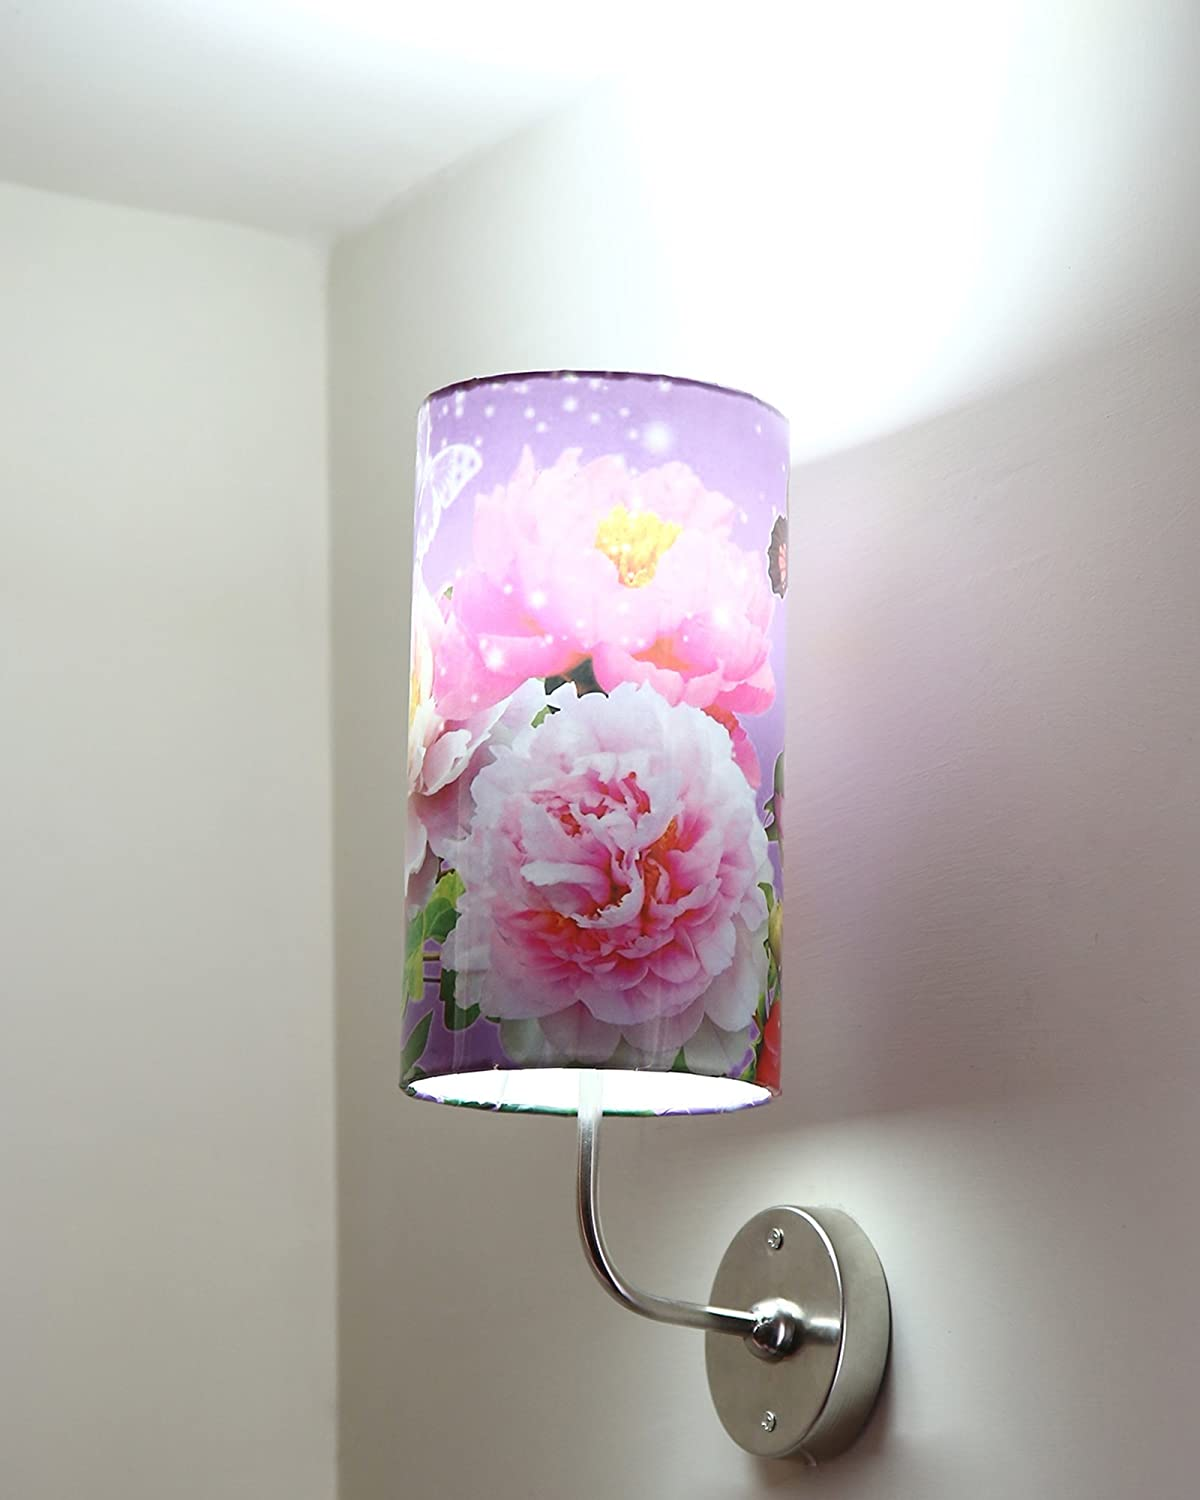 LIGHT ANGLE Handmade Plastic with Color Paper Sheet Crafted Floral Sceneted Wall Sconce Lamp (5.5x5.5x8 inch, Multicolor)